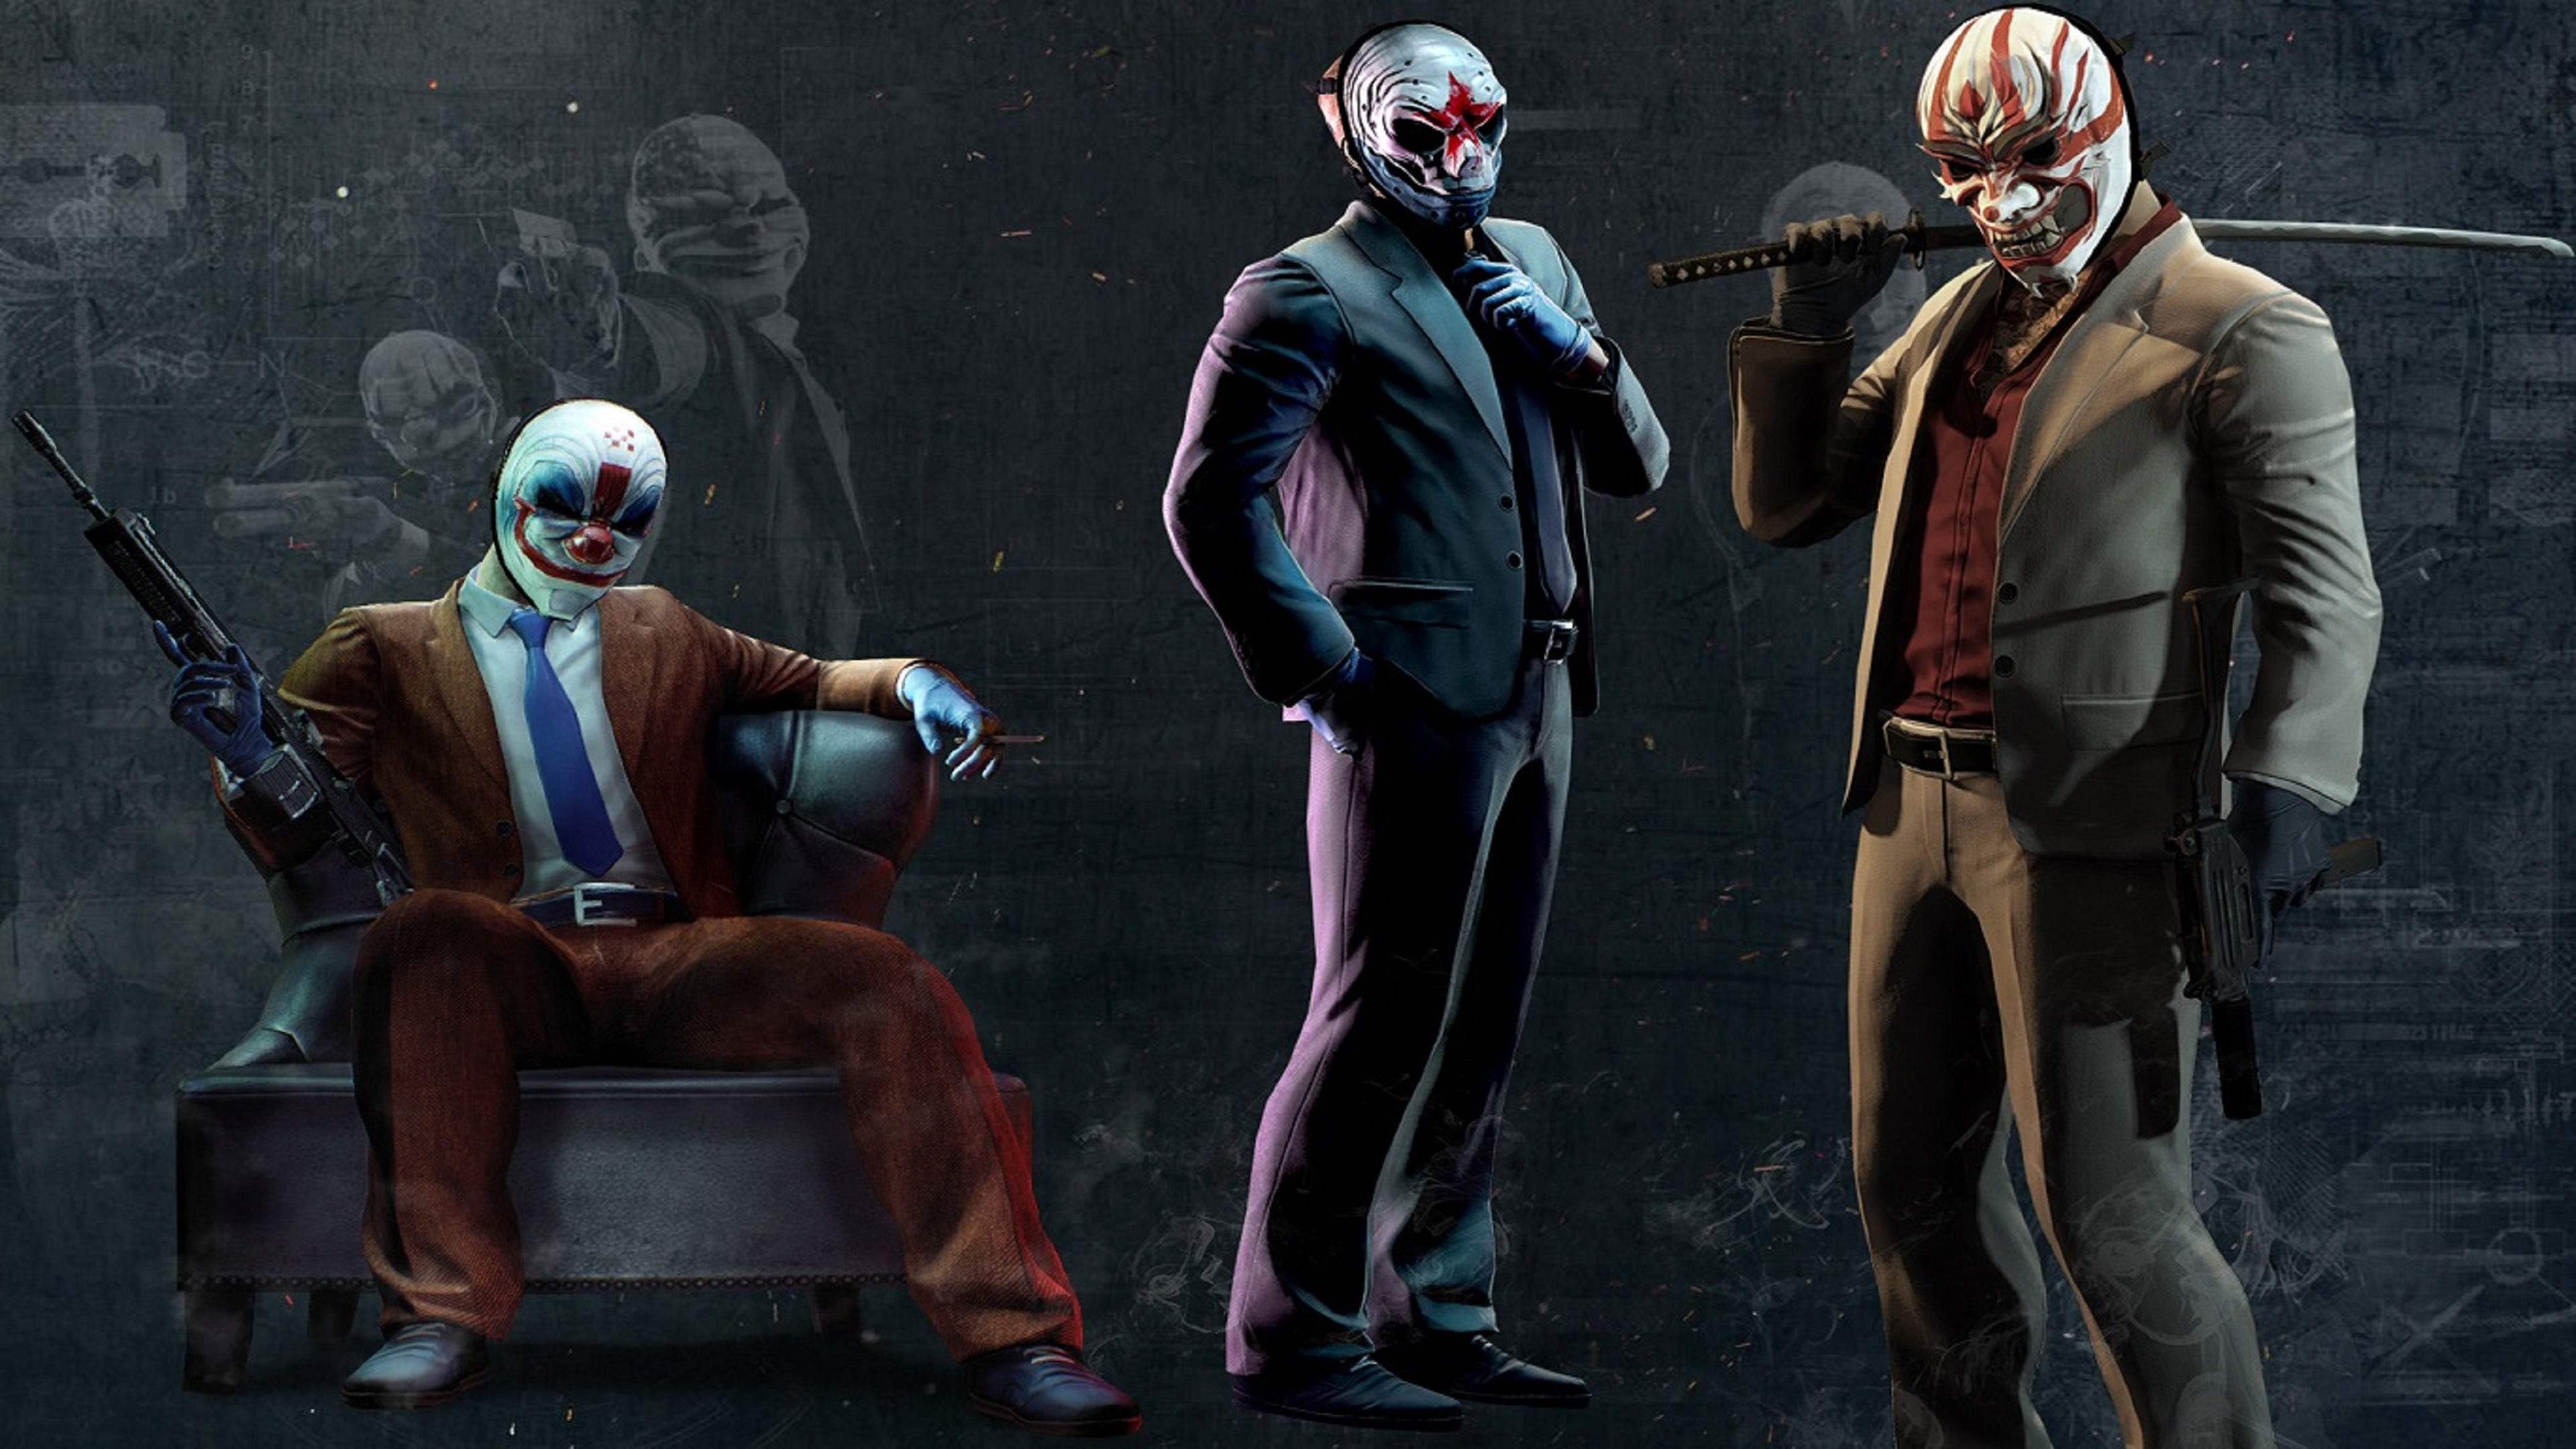 payday 2 artwork 2 hd games 4k wallpapers images